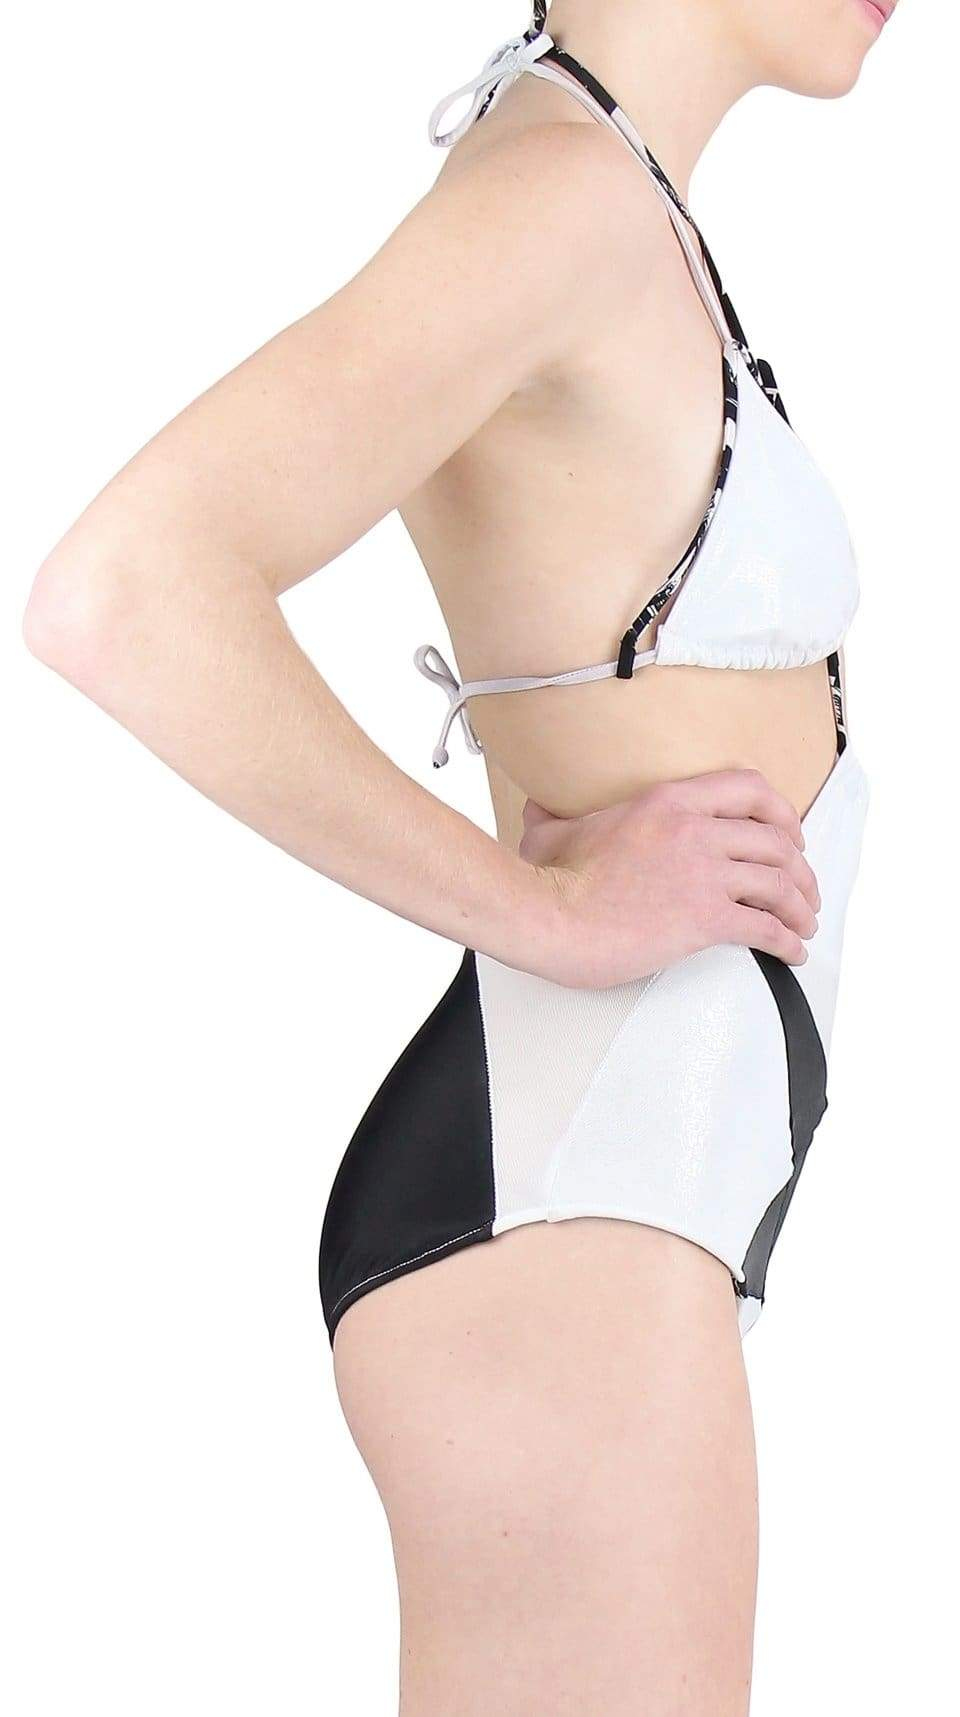 White and black star Starfish Delphina Swimsuit Bottoms Recycled Material Fabric by Rosina Mae Nineteenth Amendment